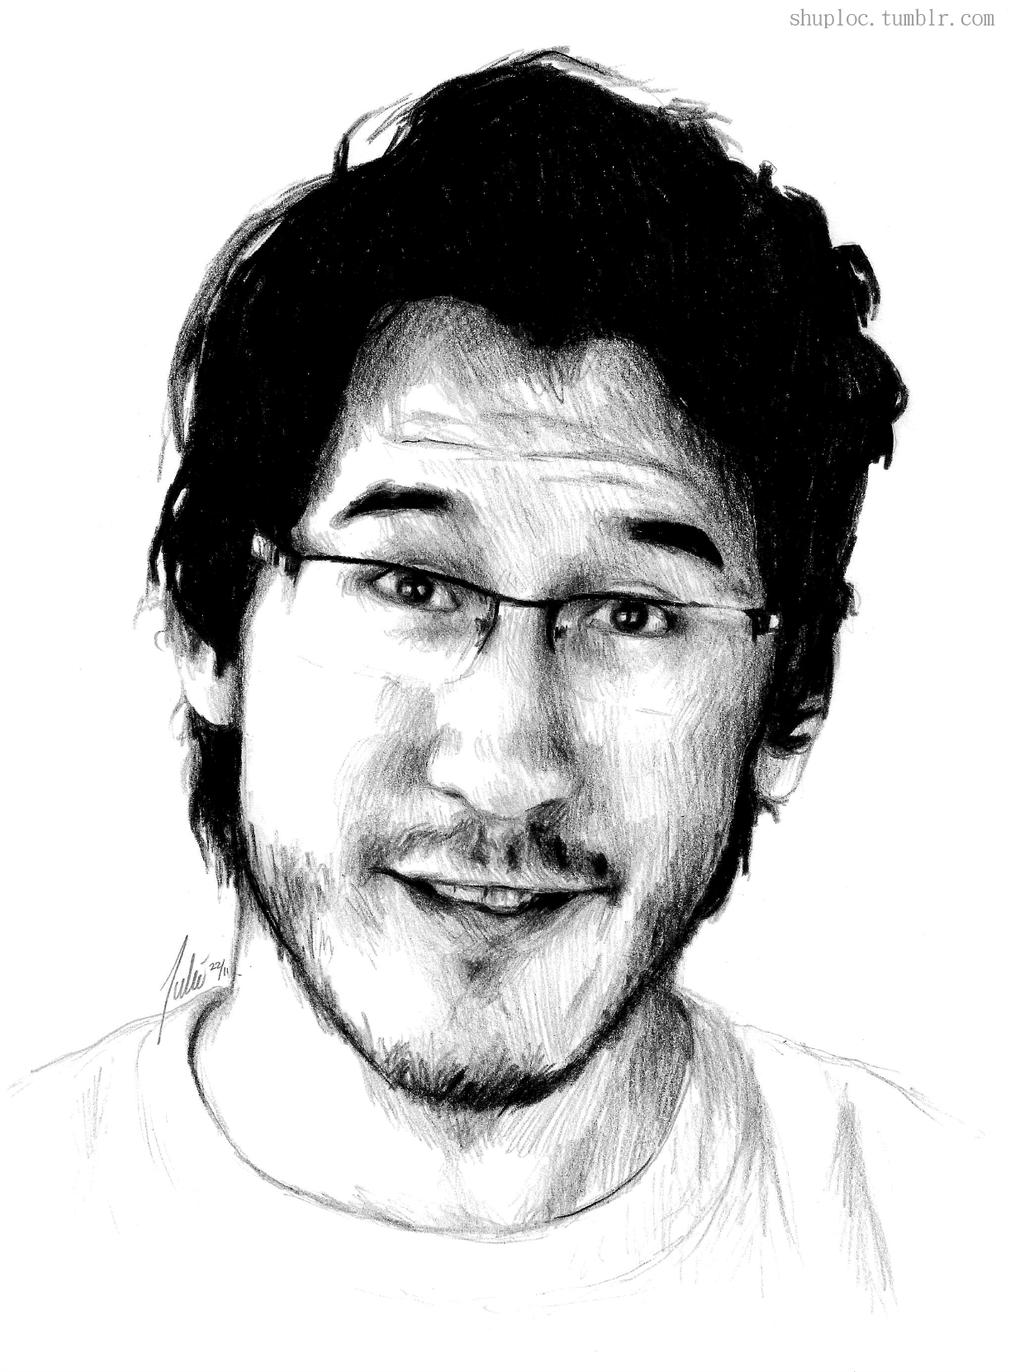 Markiplier by Shuploc on DeviantArt